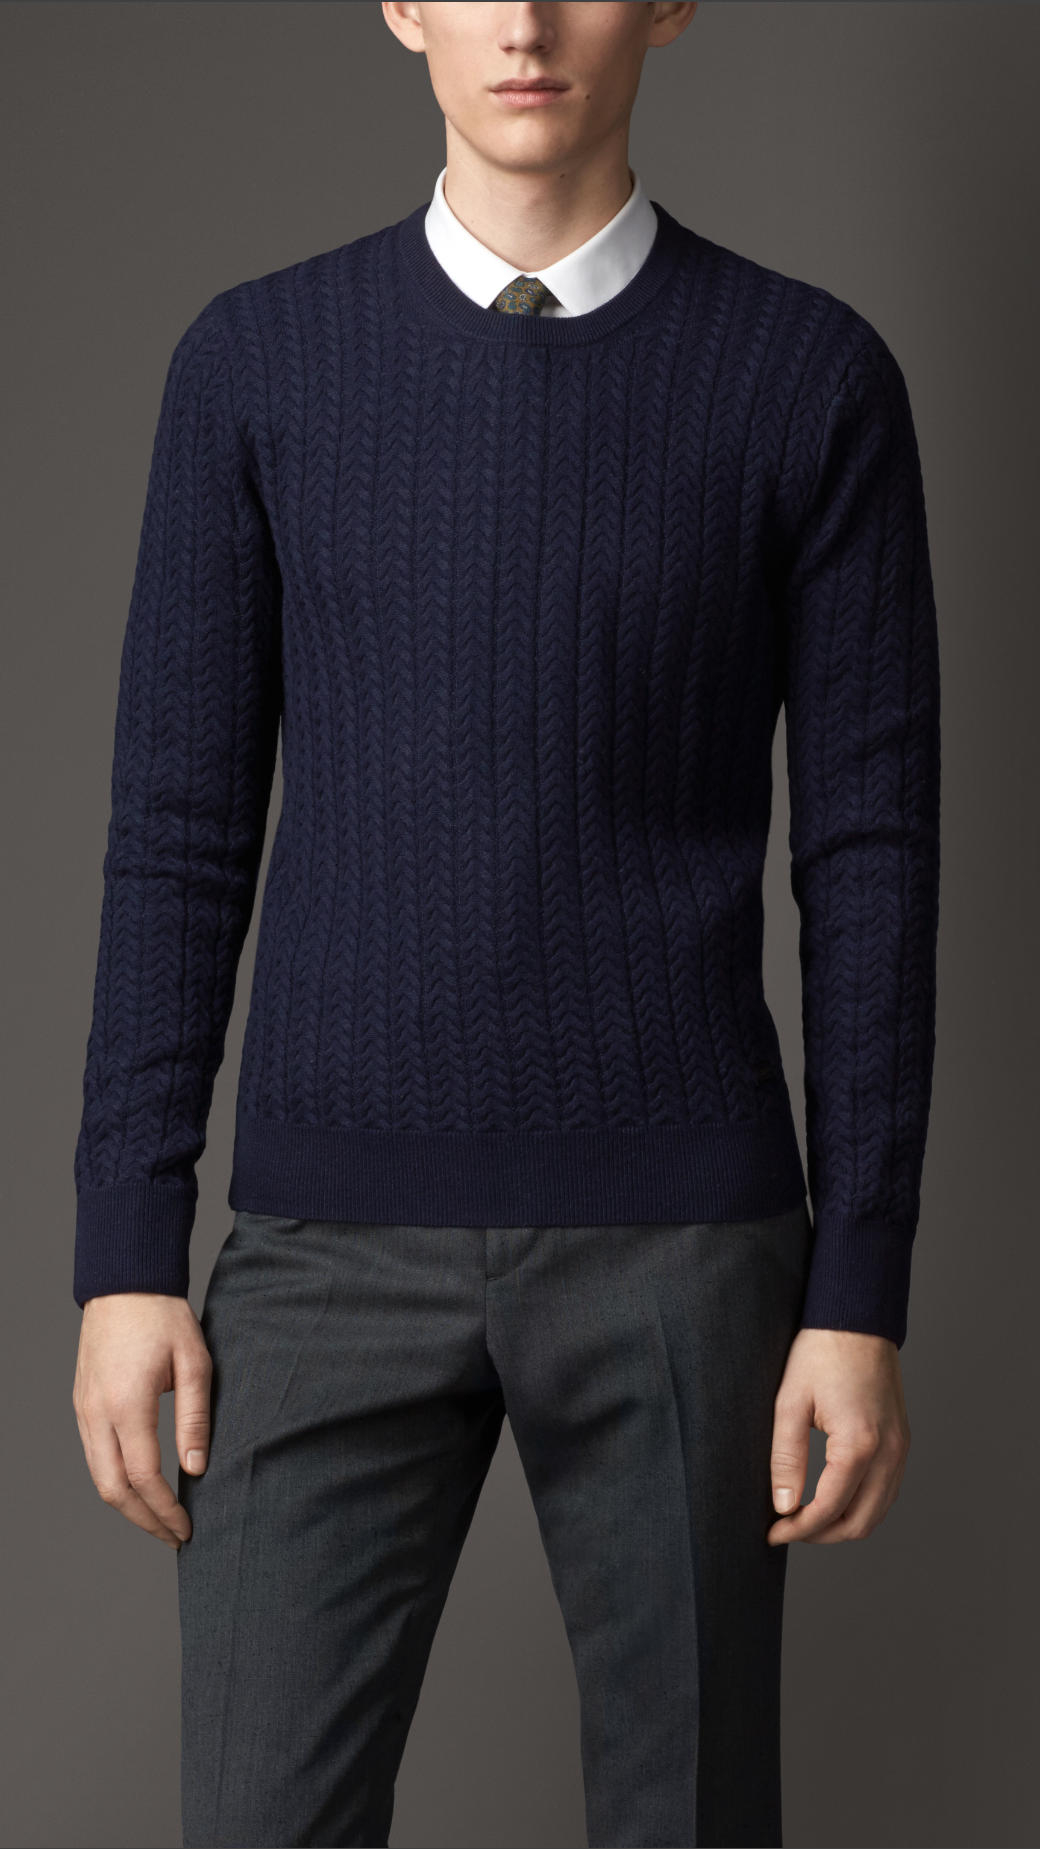 For the past 15 years. Since , Mahogany has evolved to become a specialist in cashmere sweaters for men and women.. Originally, our area of expertise was based around tailor-made suits and shirts.